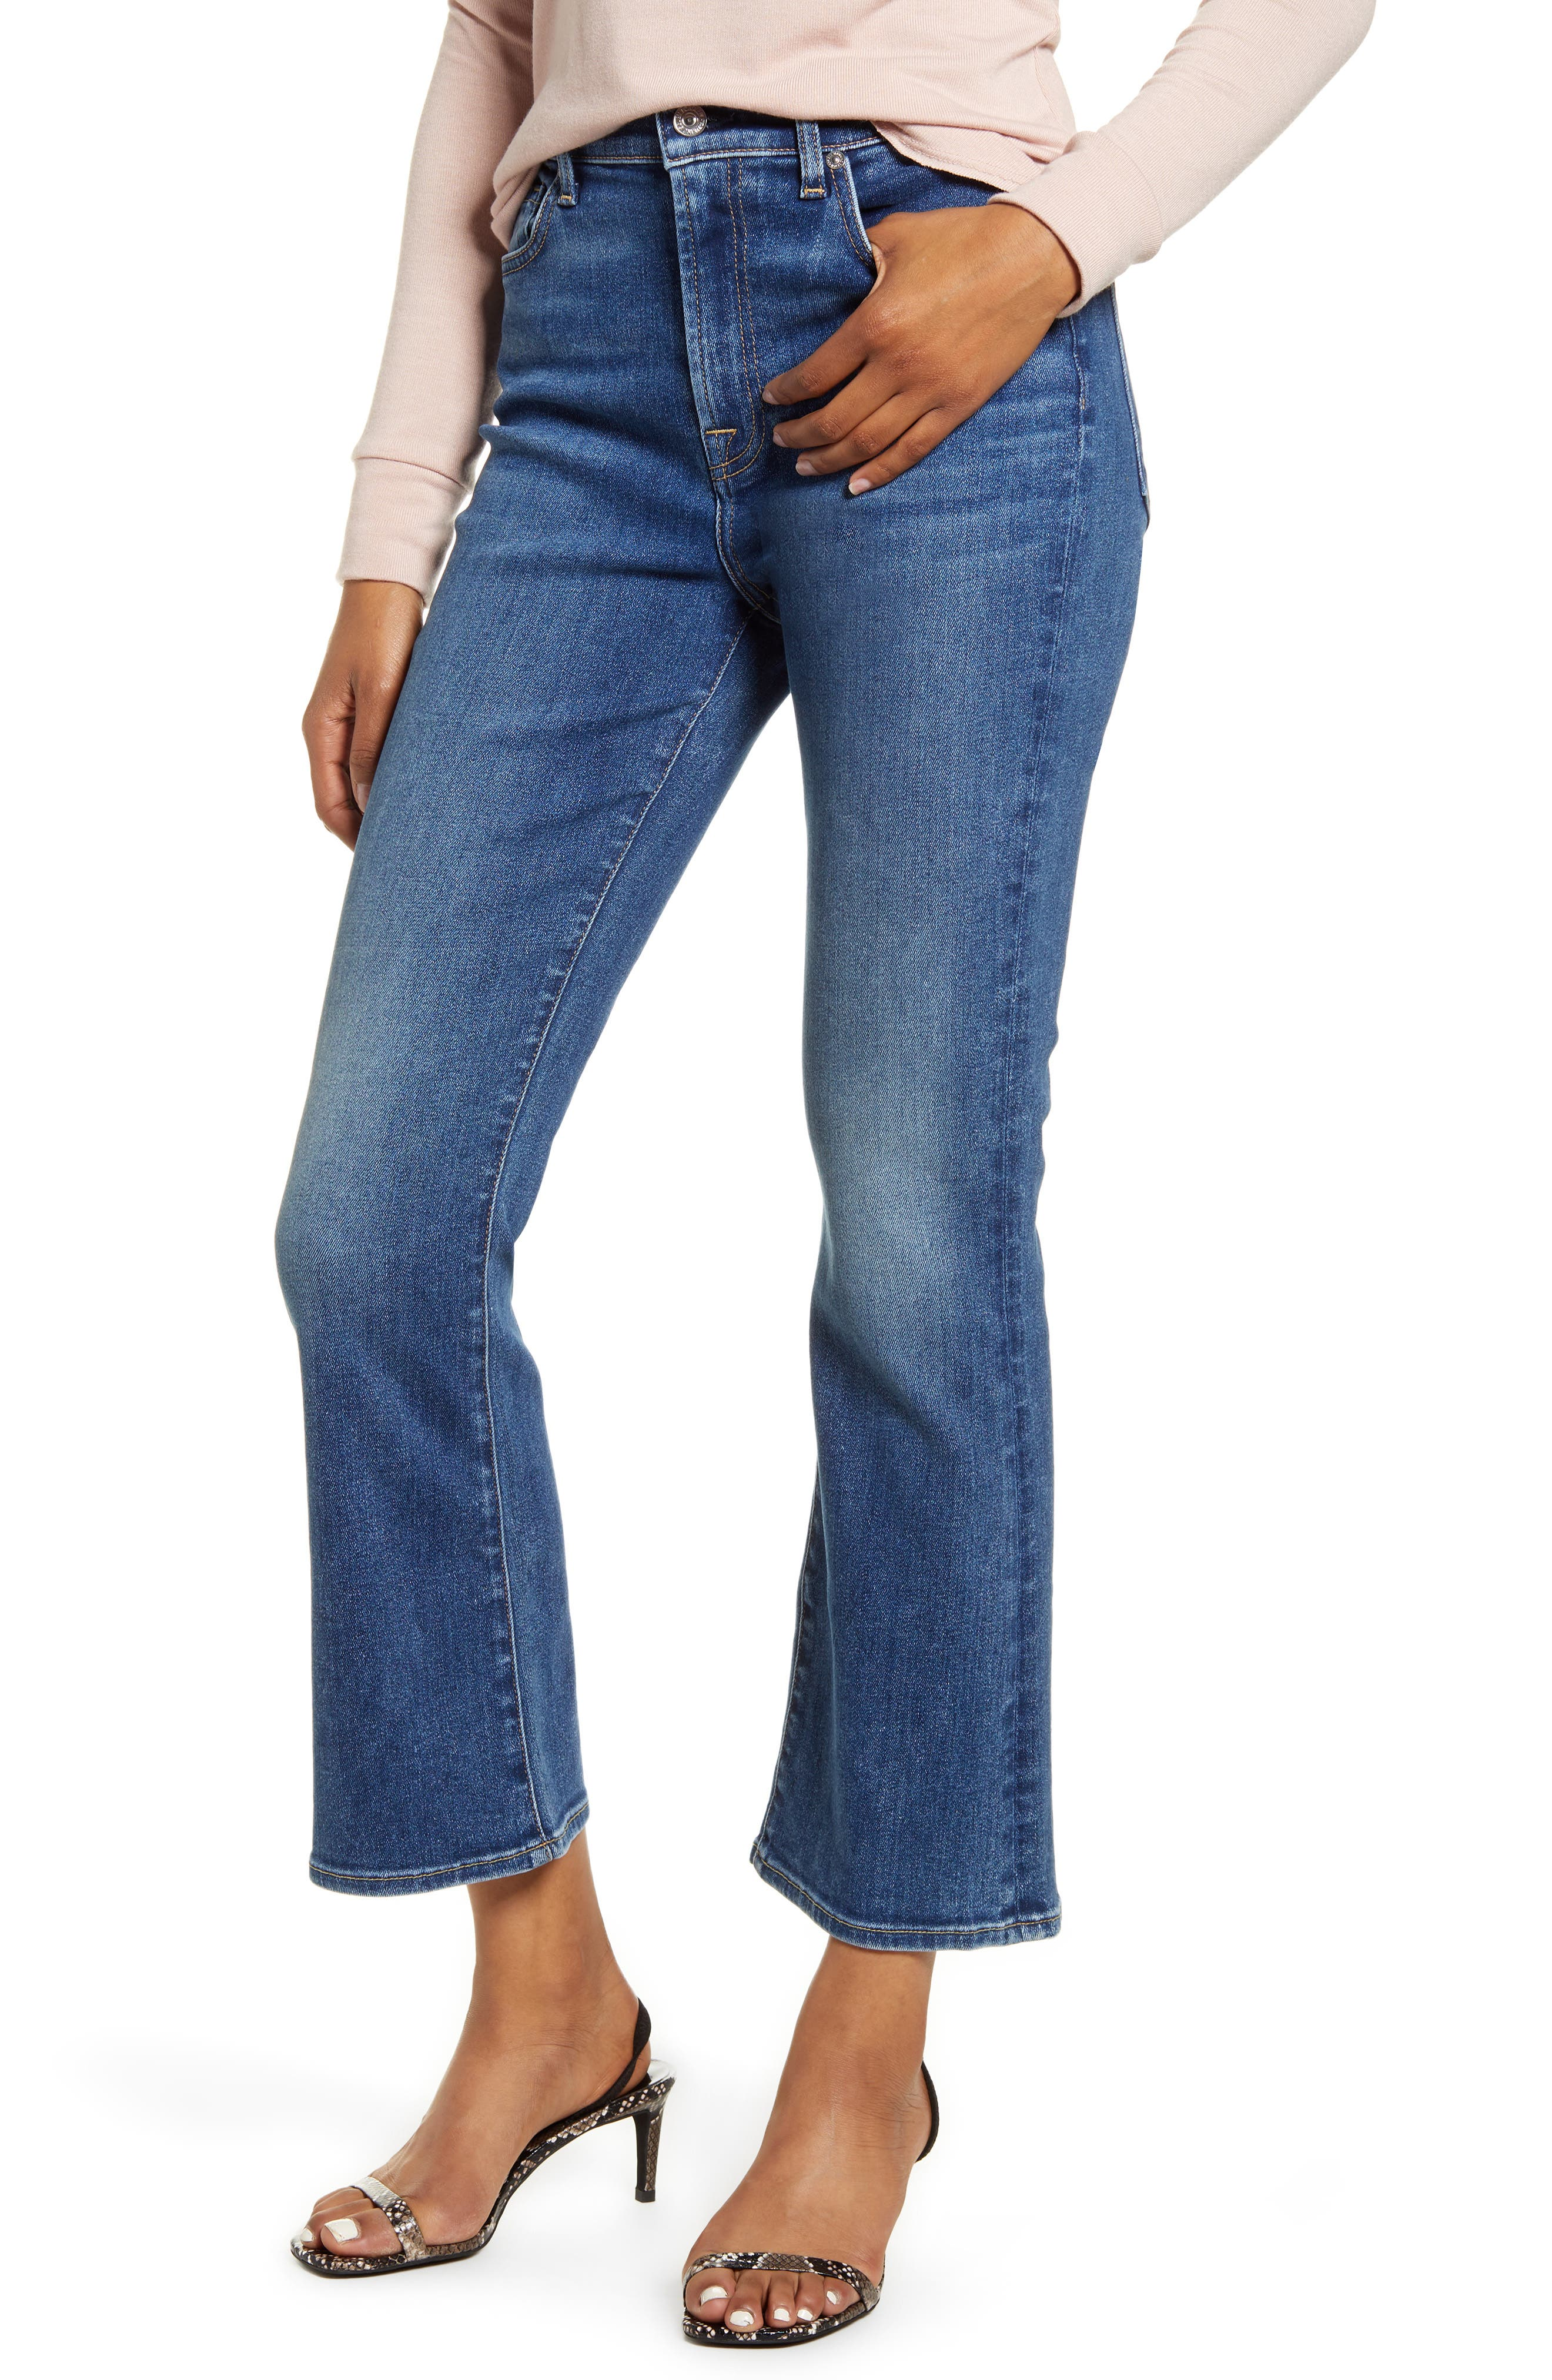 Image of 7 For All Mankind High Waist Slim Fit Kick Flare Jeans